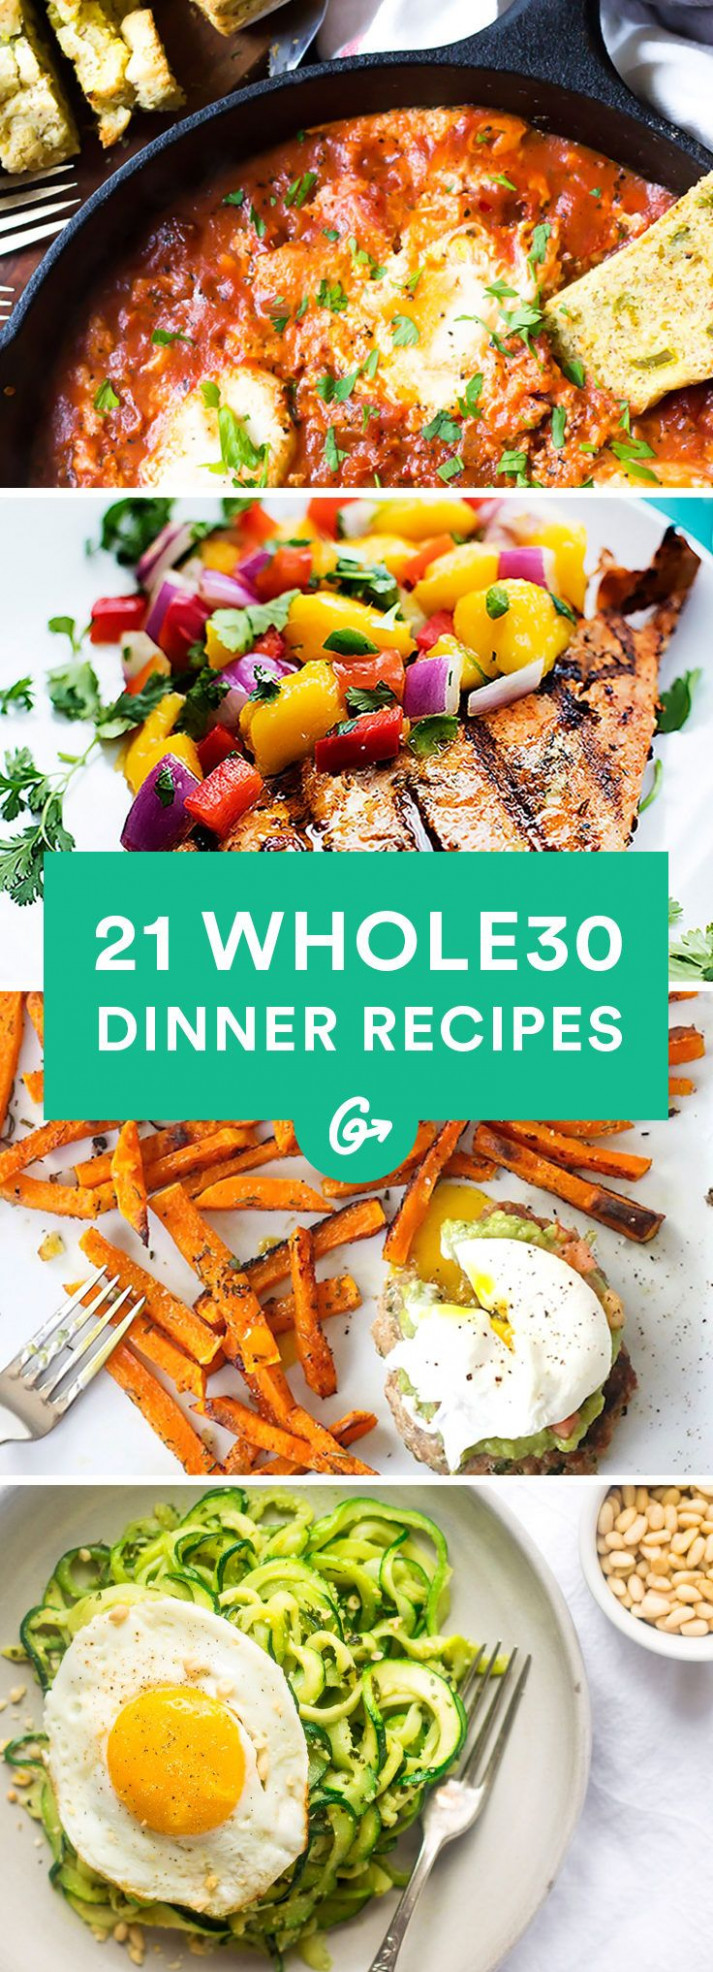 21 Easy And Delicious Whole30 Dinner Recipes | I'm So …